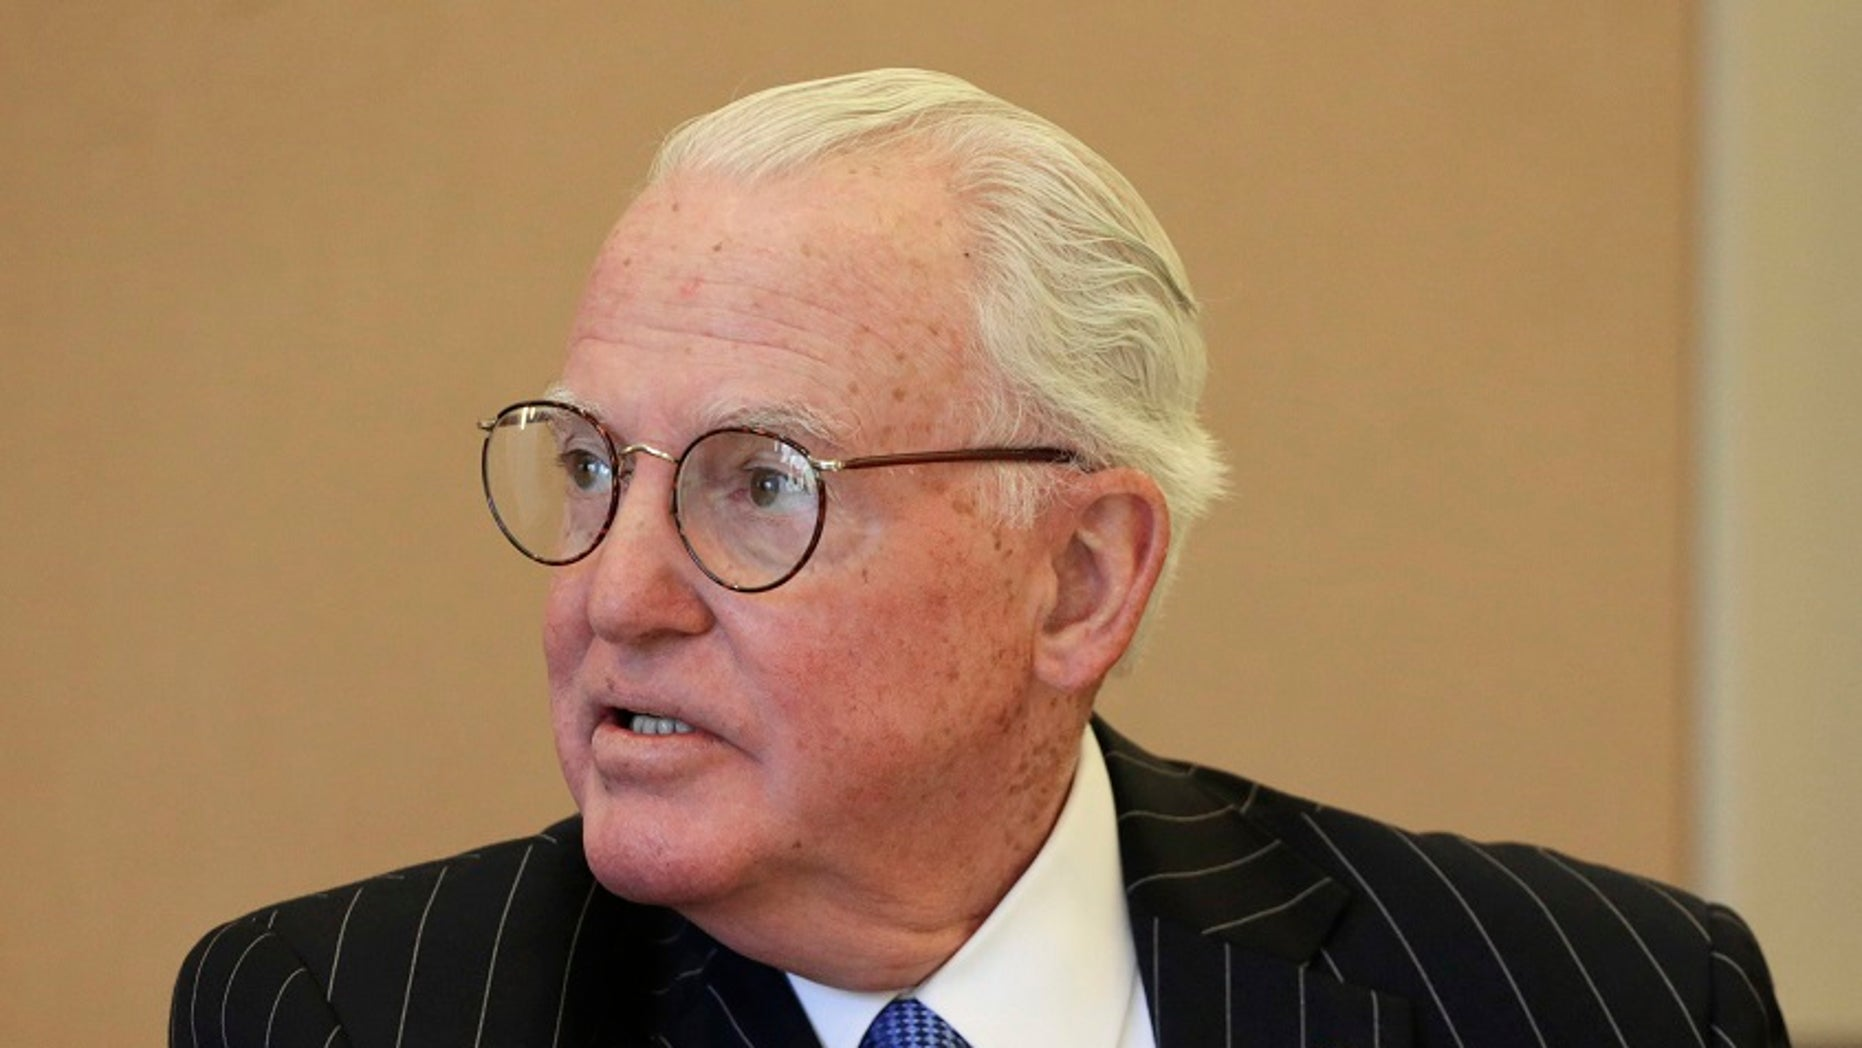 Chicago Alderman Ed Burke is a partner at Klafter and Burke, a law firm that once represented President Trump in property tax cases.